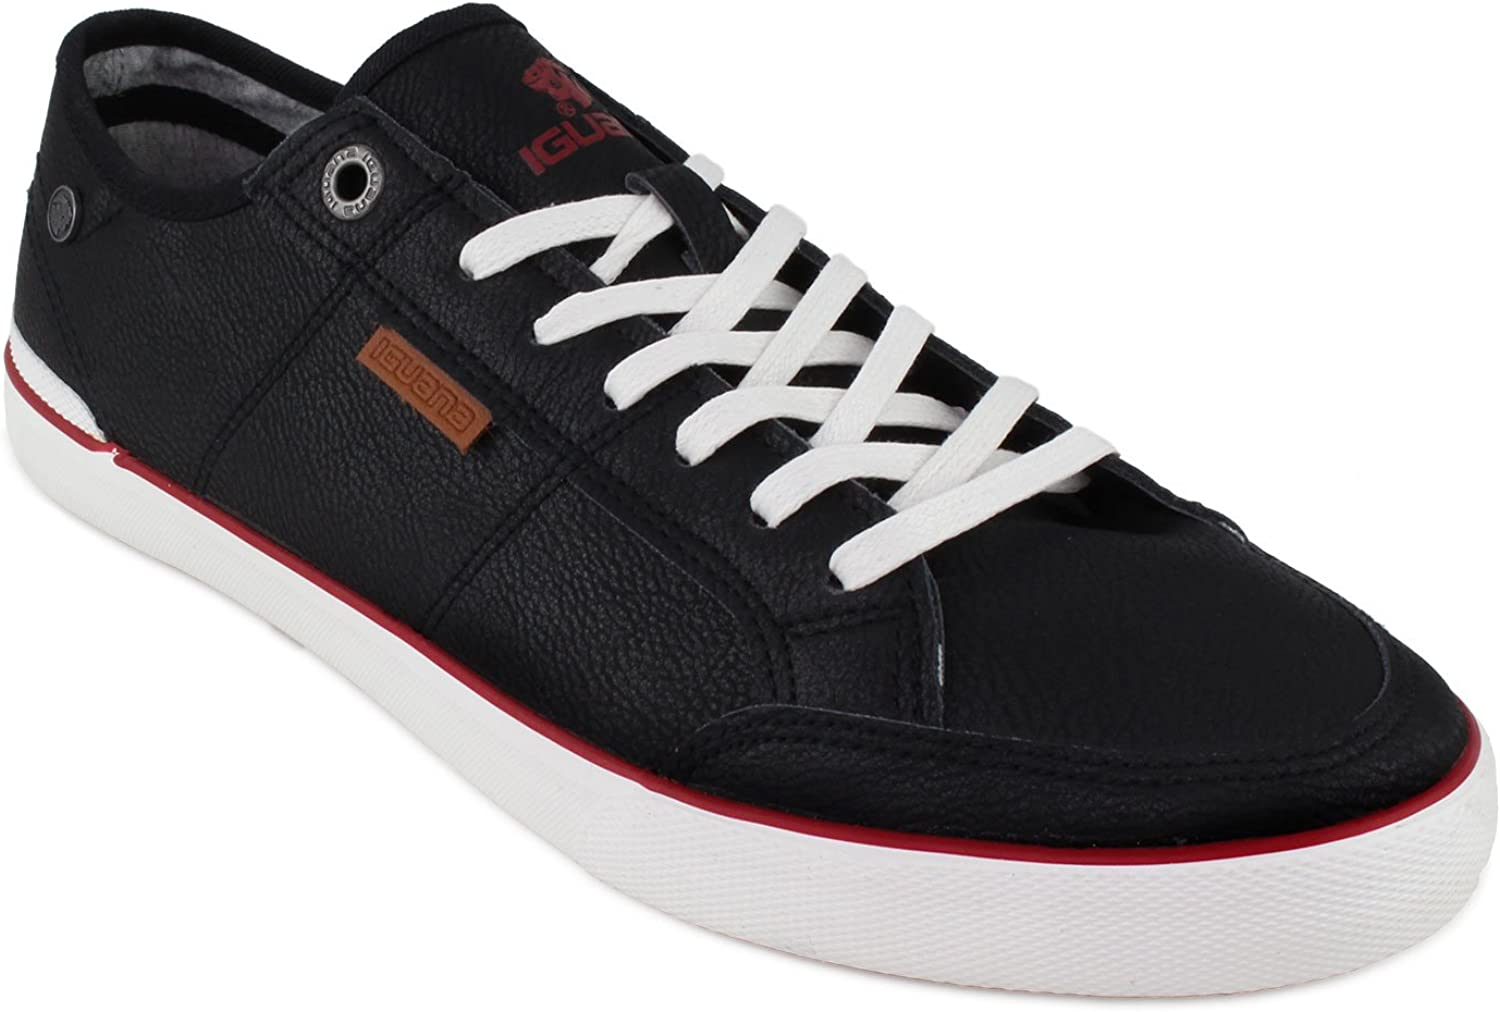 Iguana Men Albion Leisure Shoe Sneaker Perfect Footwear for a Fashionable Outfit